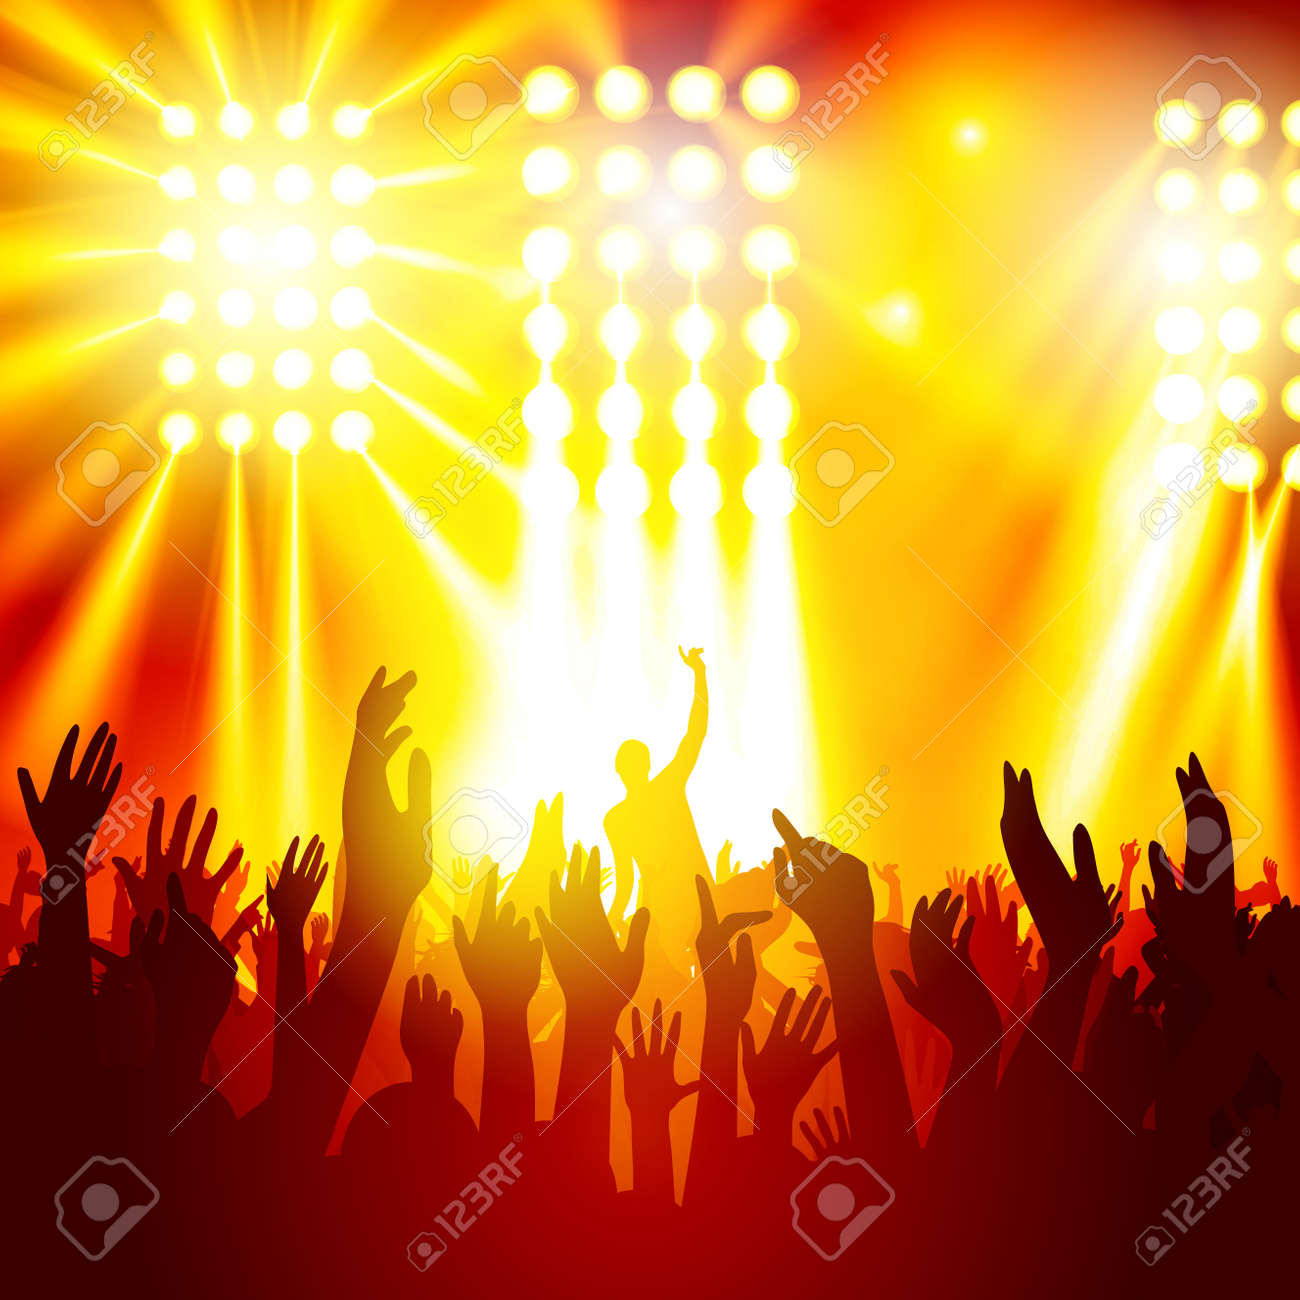 Rock concert, silhouettes of happy people raising up hands. Vector illustration - 48353570